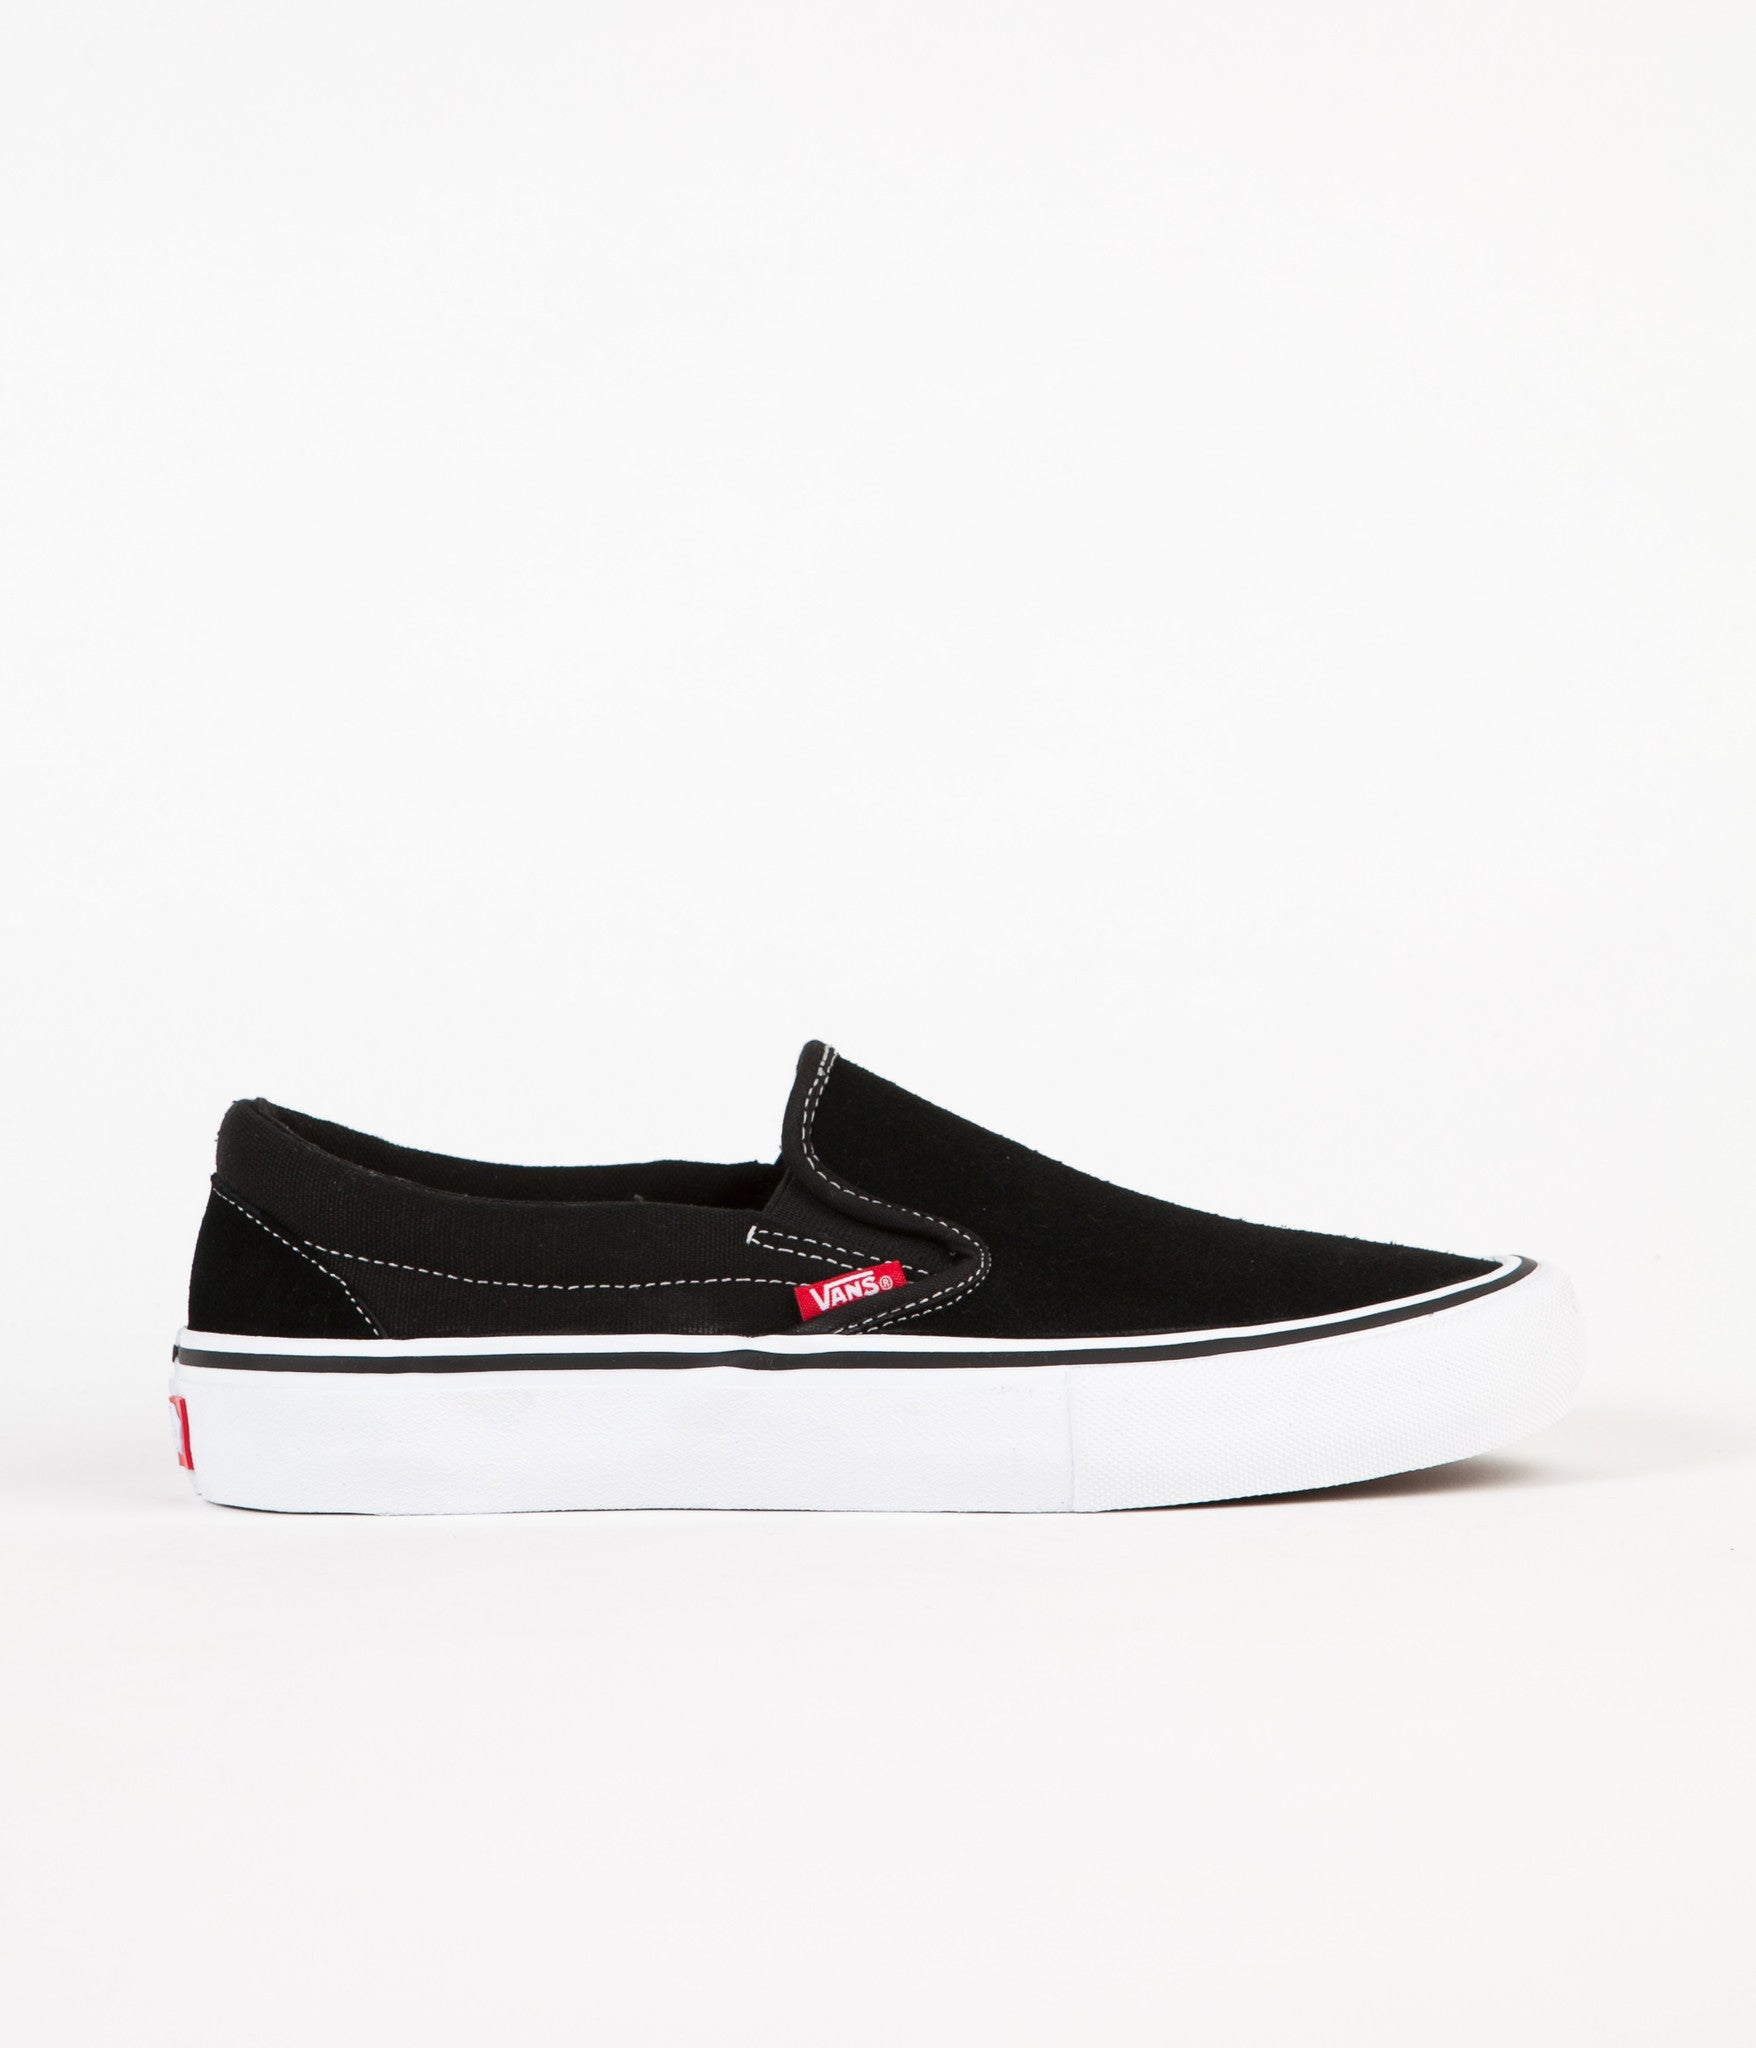 4621de8255a1cc Vans Slip On Pro Shoes - Black   White   Gum